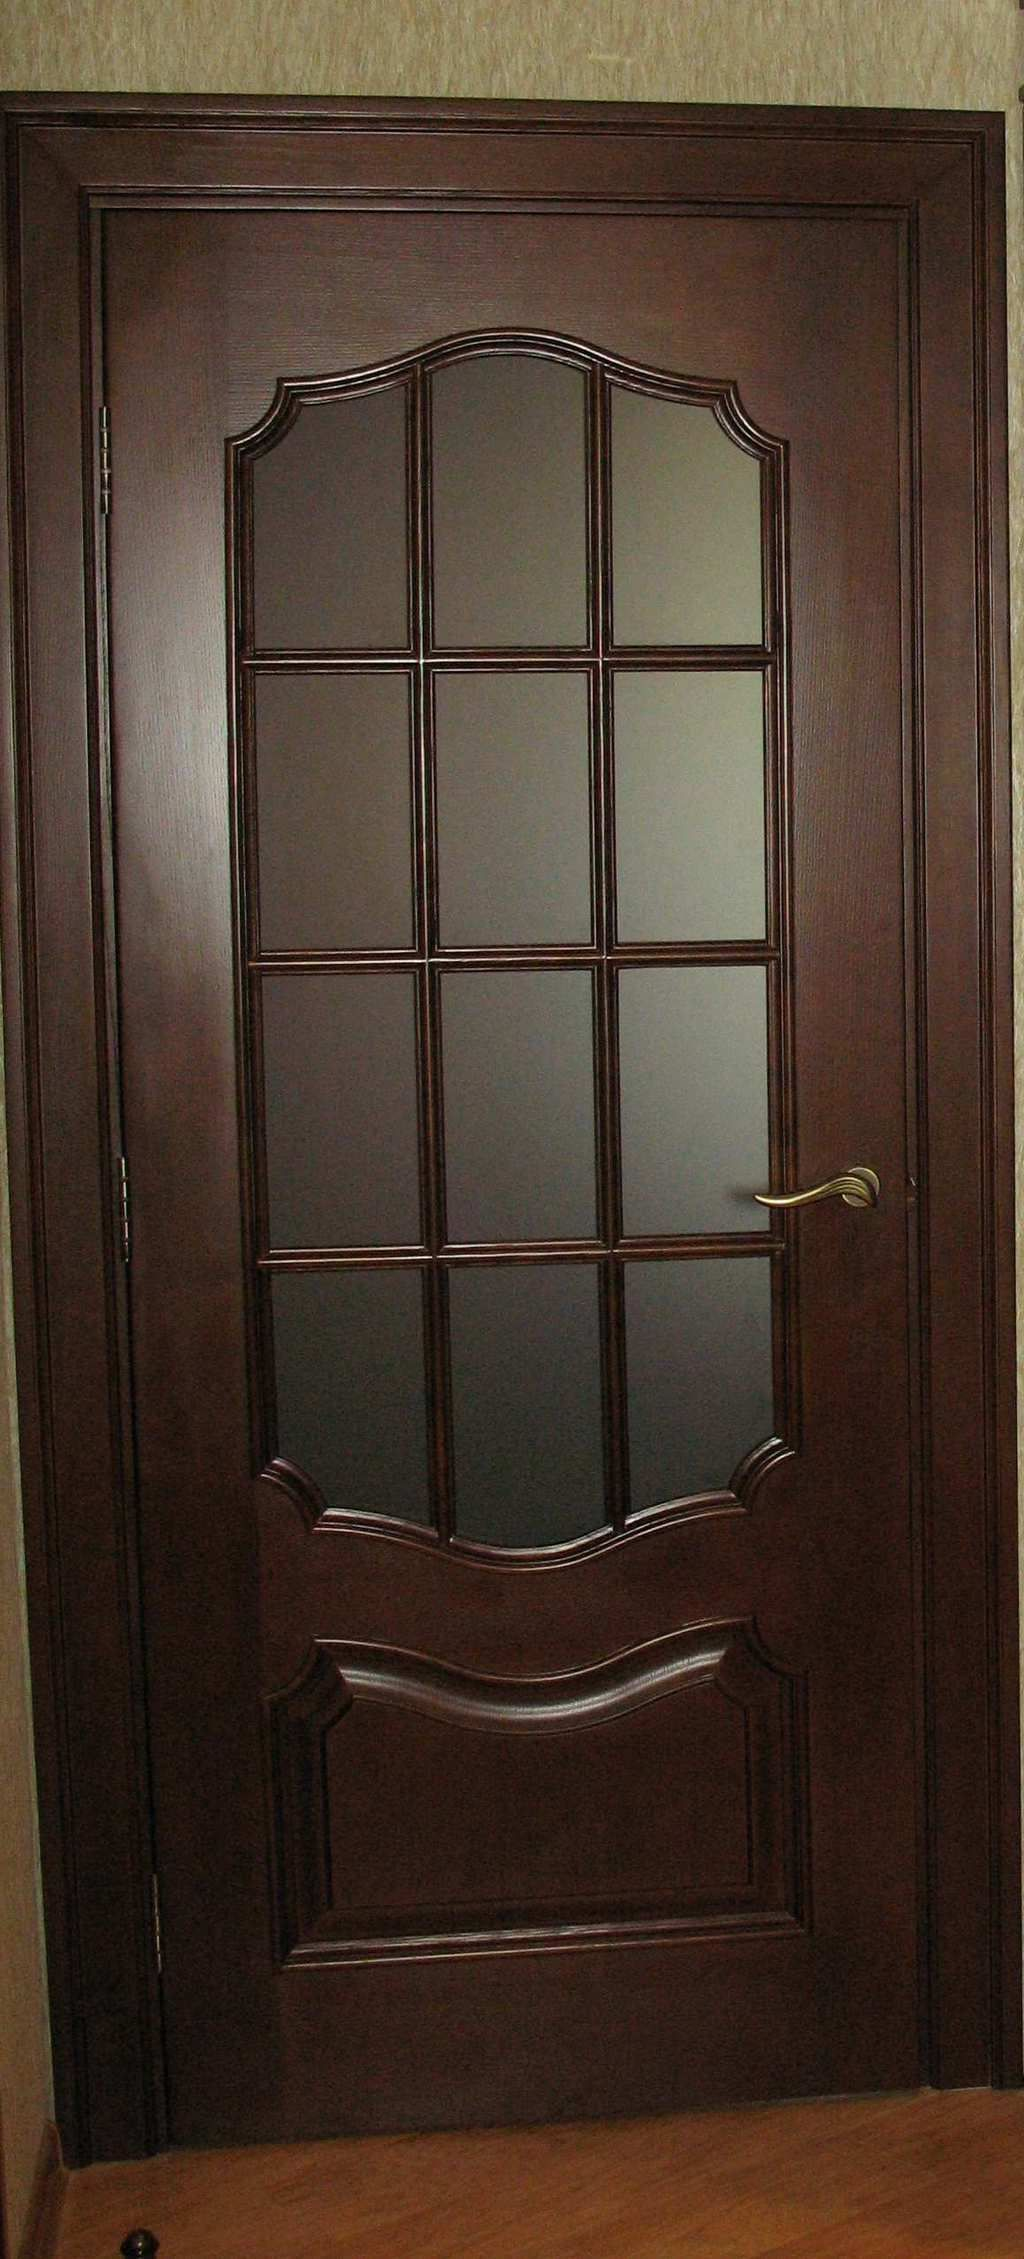 Luxury interior doors in classic antique baroque style Wooden interior